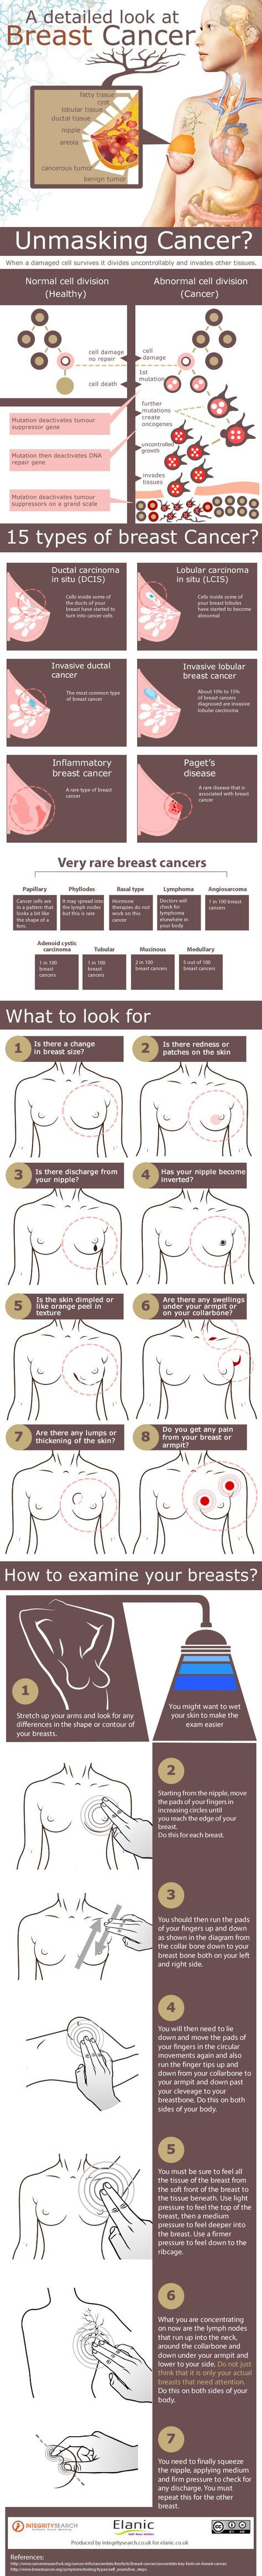 Signs of Breast Cancer Images and Facts